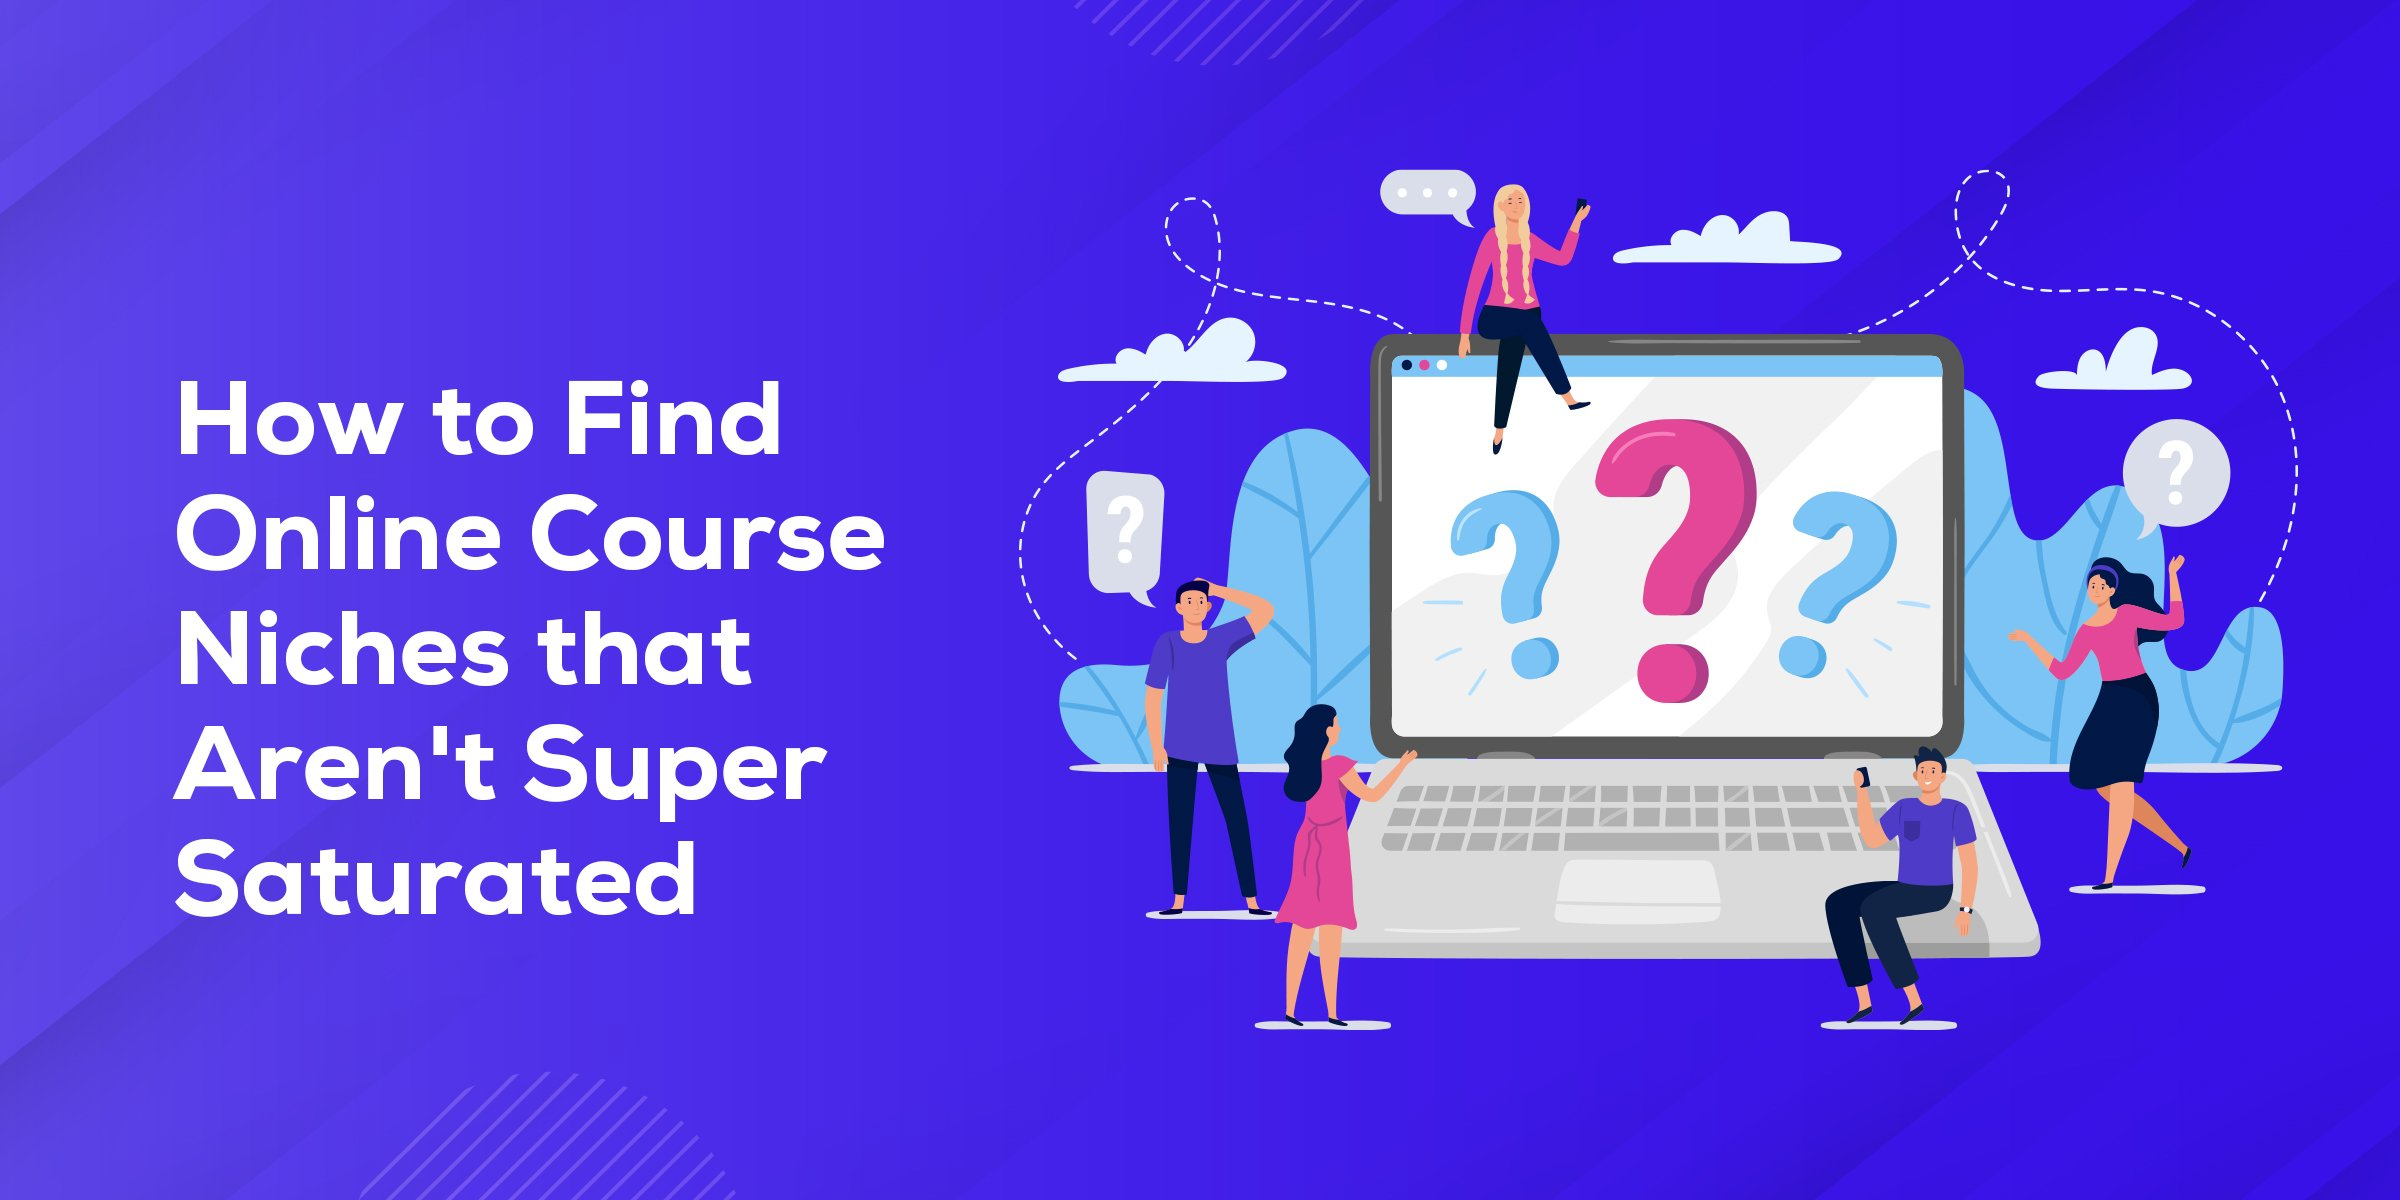 How to Find Online Course Niches That Aren't Super Saturated